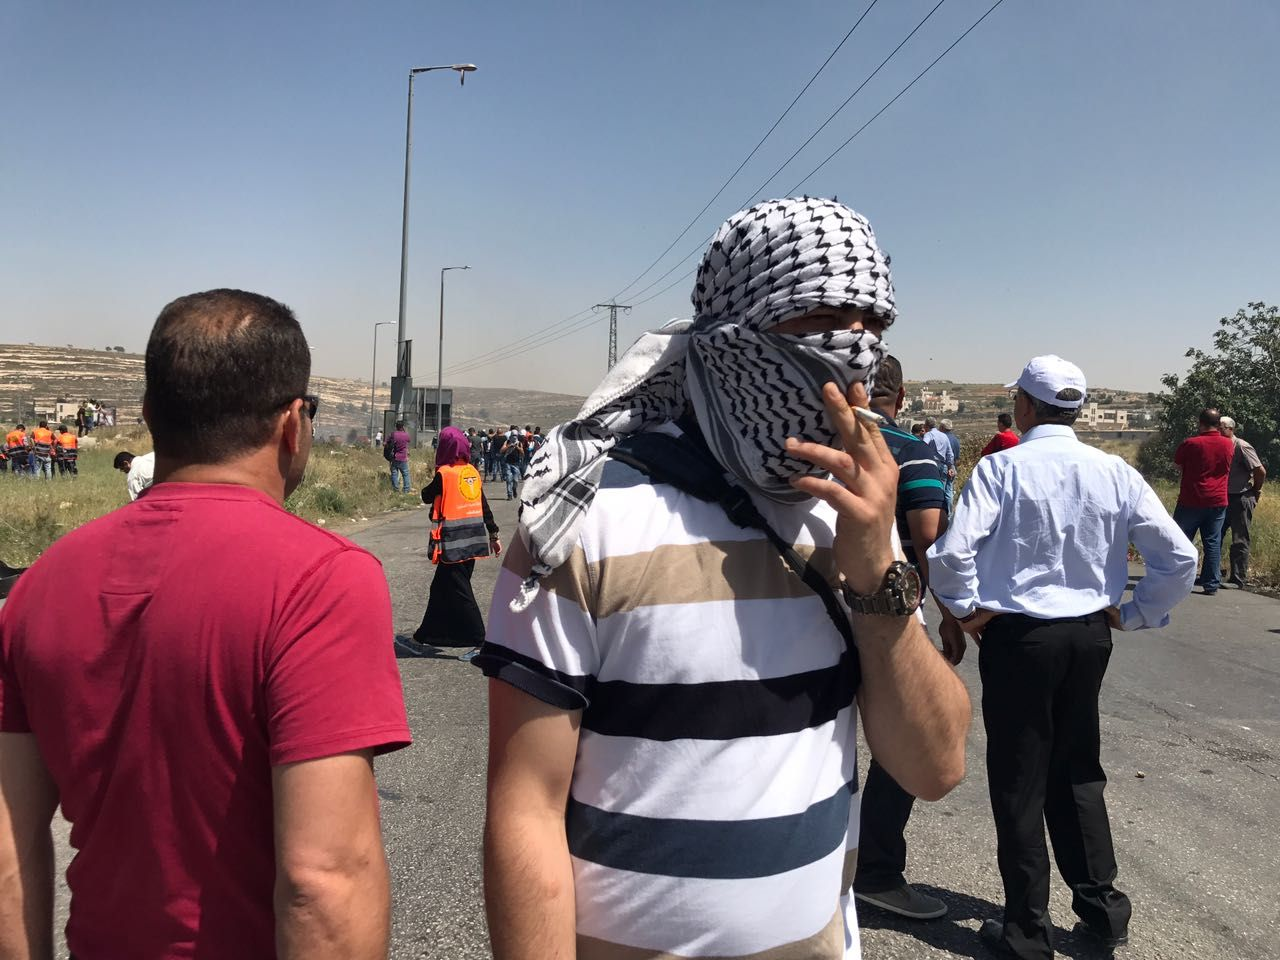 Palestinians injured during rallies for prisoners